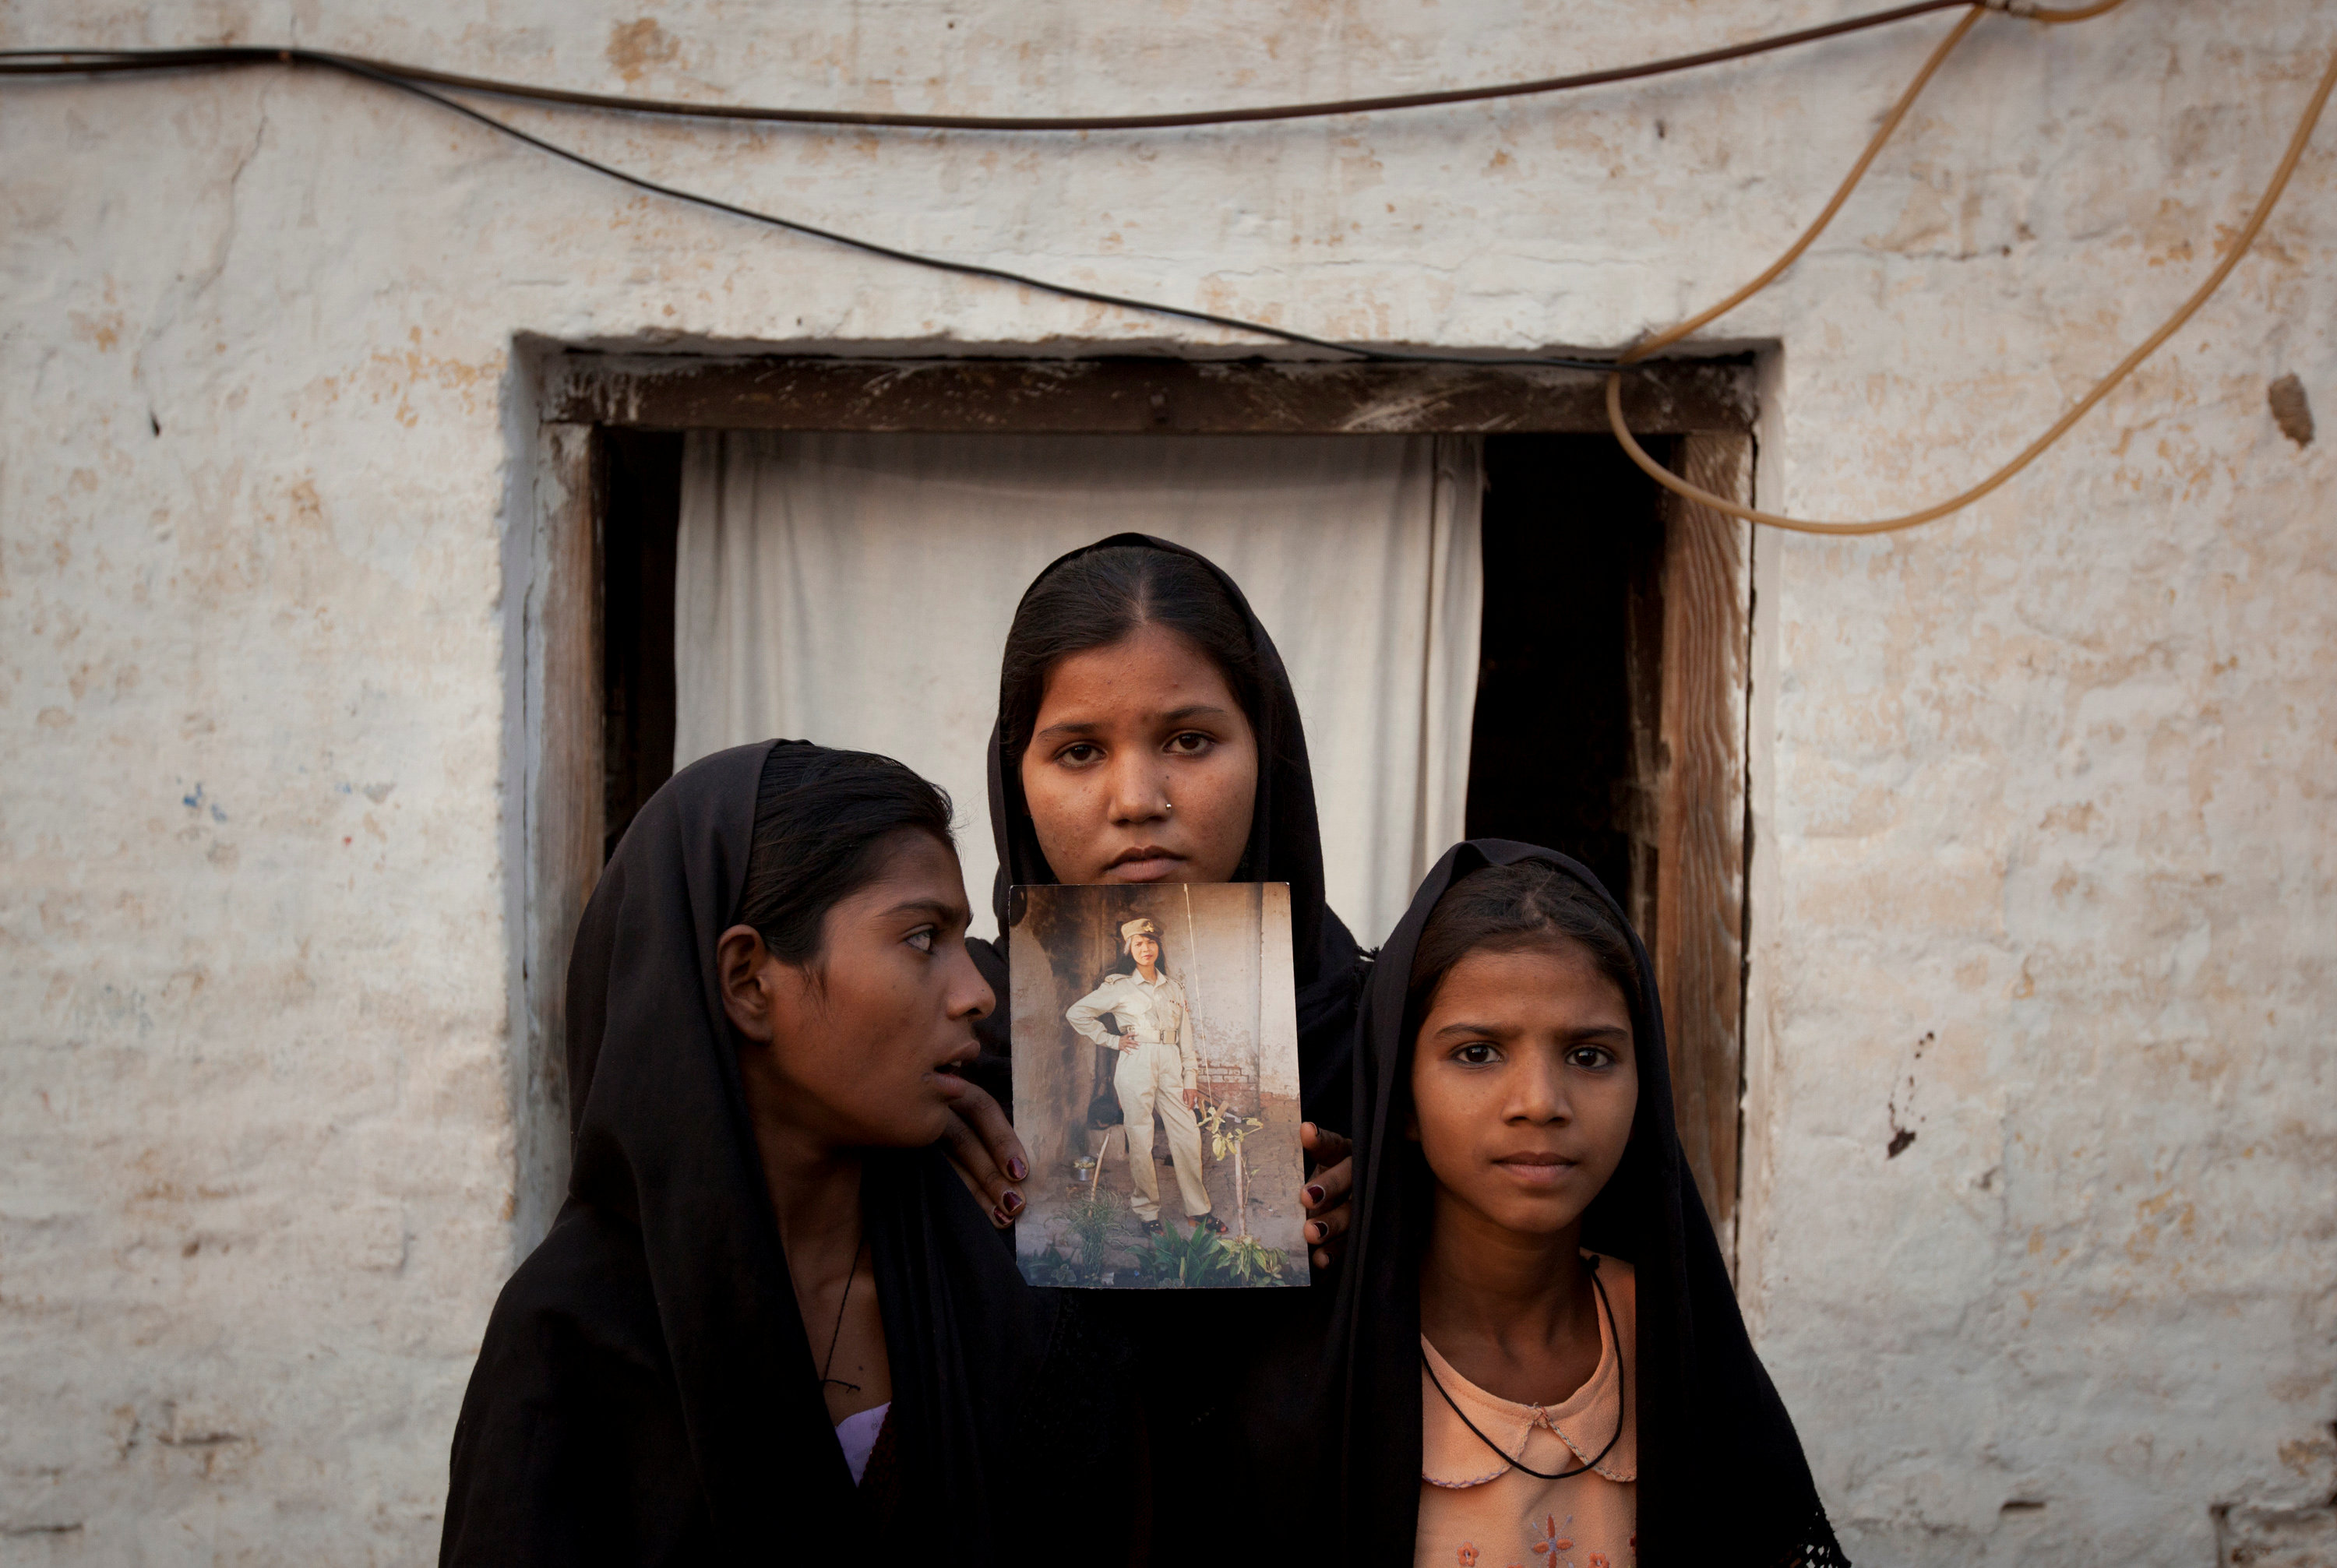 FILE PHOTO: The daughters of Pakistani Christian woman Asia Bibi pose with an image of their mother while standing outside their residence in Sheikhupura located in Pakistan's Punjab Province November 13, 2010. REUTERS